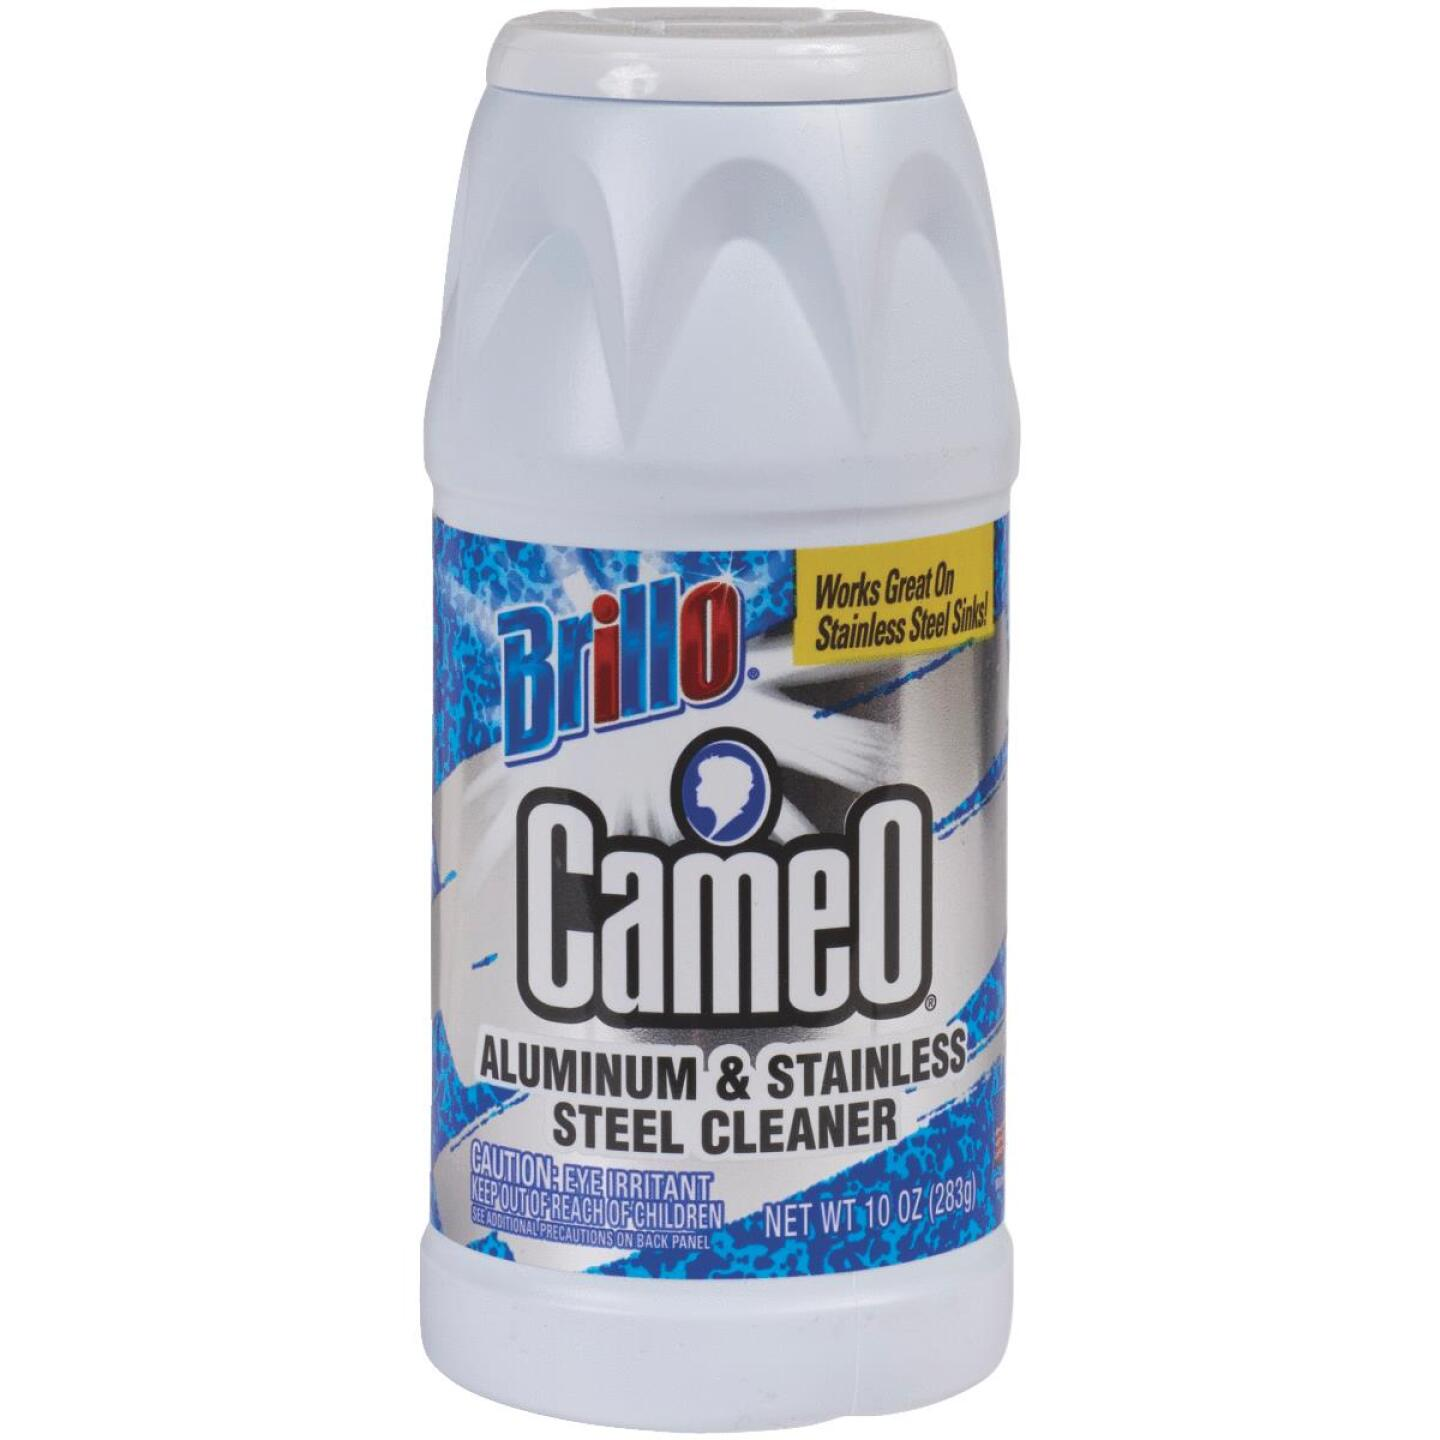 Brillo Cameo 10 Oz. Aluminum & Stainless Steel Cleaner Image 1